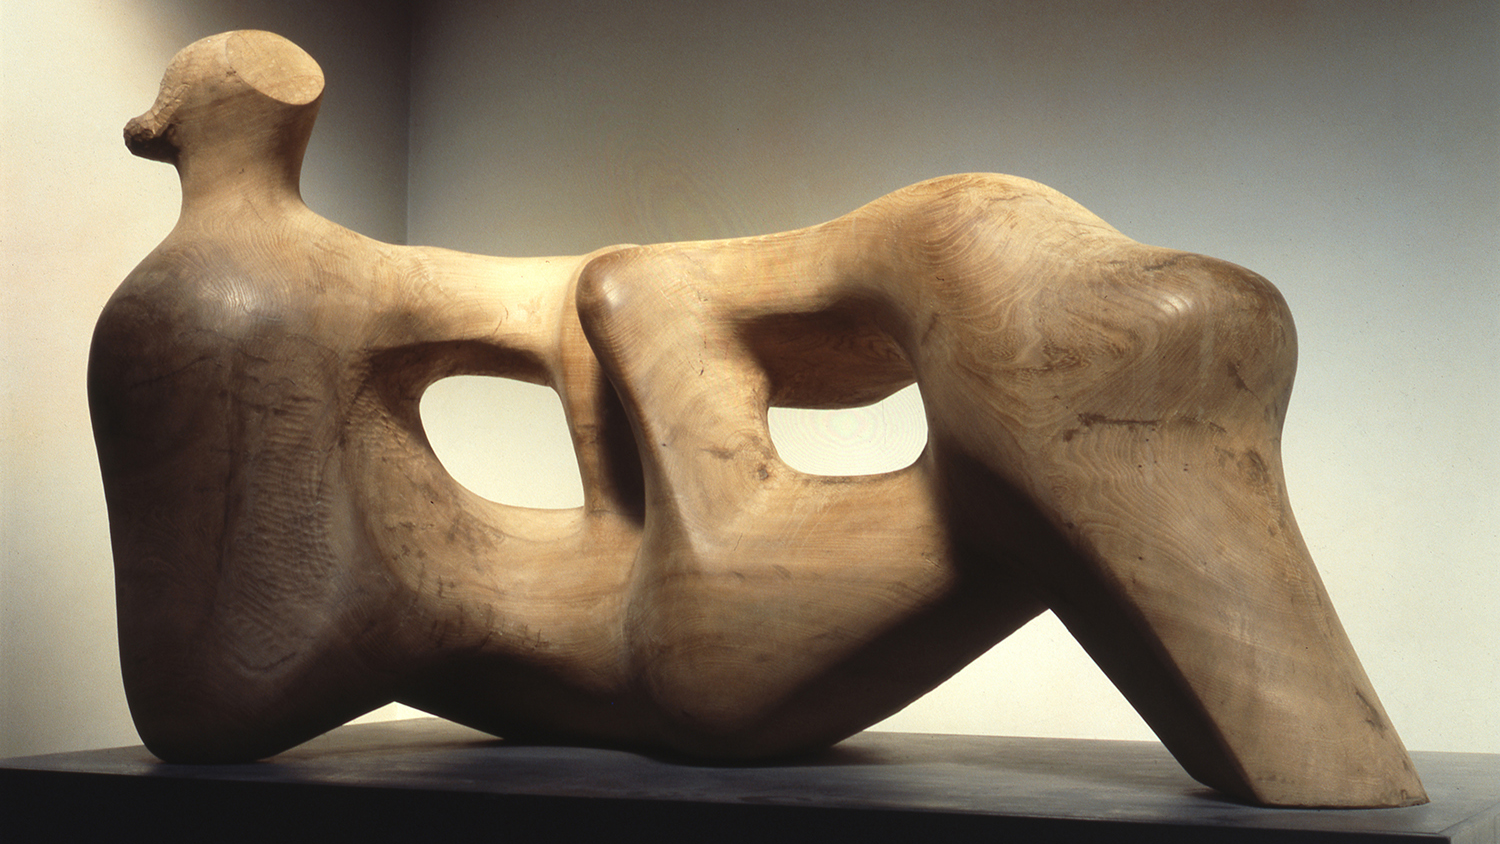 ... Henry Moore Reclining Figure Holes 1976-78 ... & Five must-see works at The Lightboxu0027s Henry Moore exhibition ... islam-shia.org